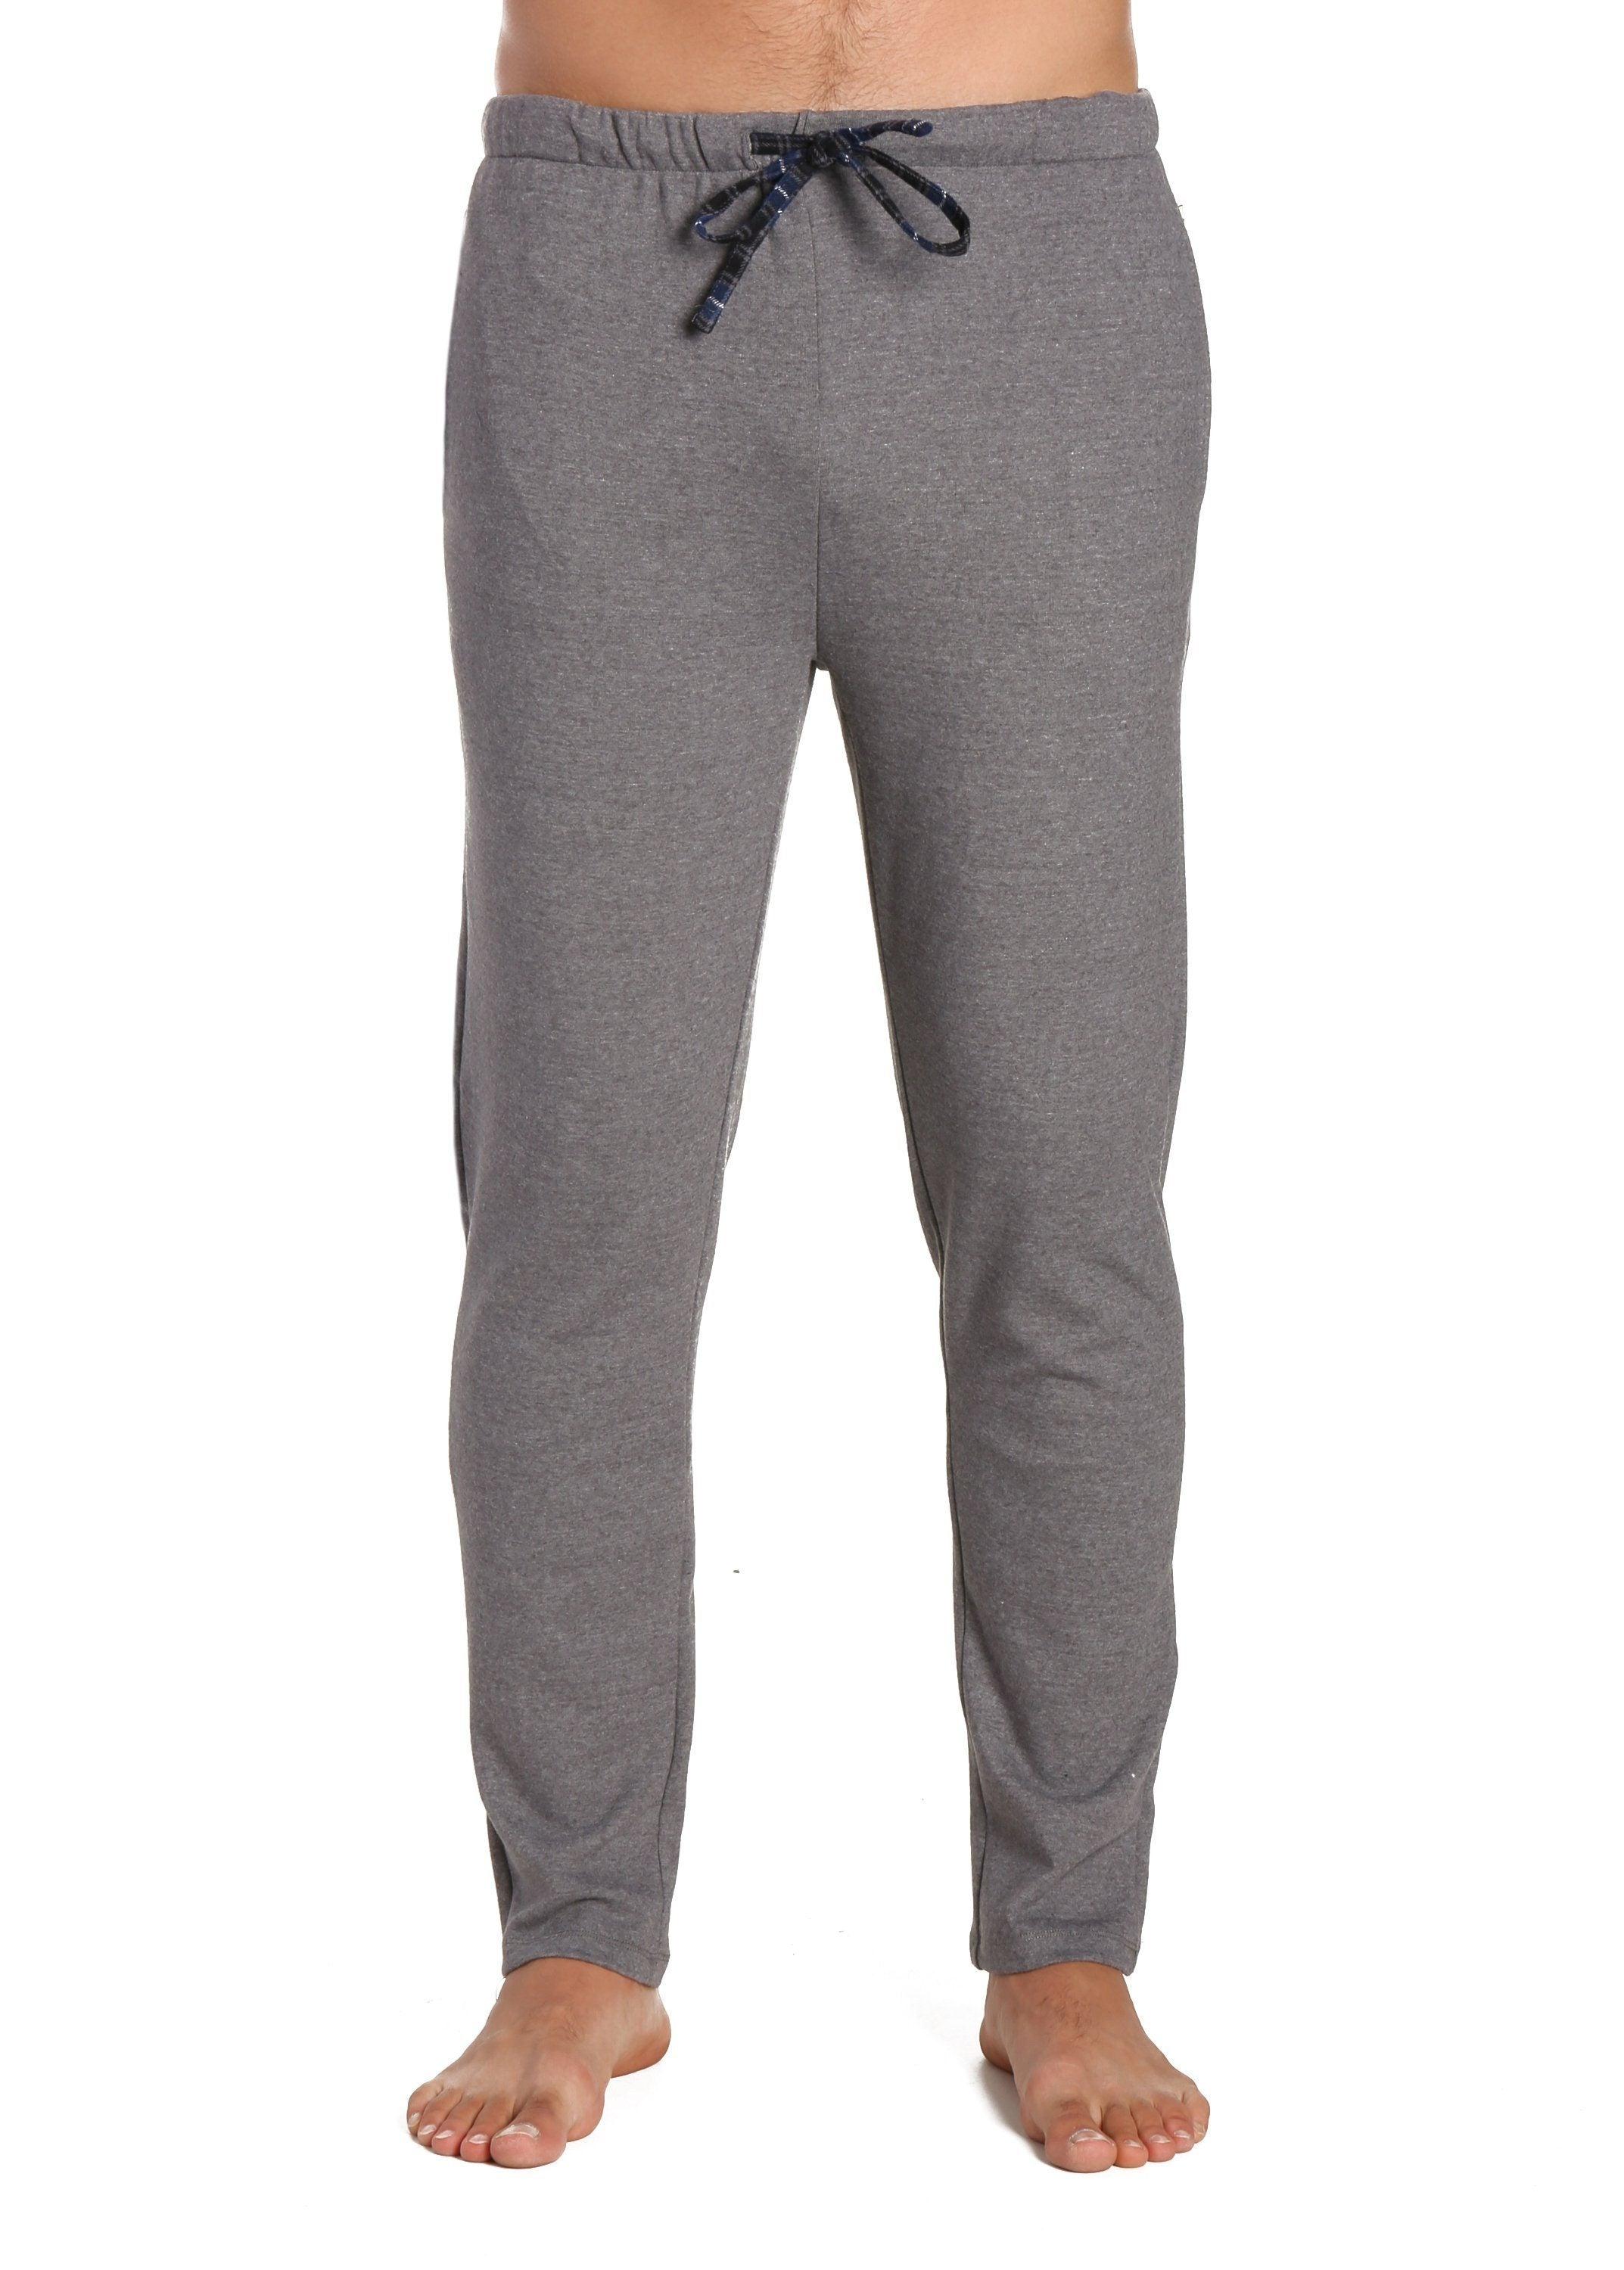 Men's Soft Brushed Rib Slim Fit Lounge Pant - Heathered Dark Grey